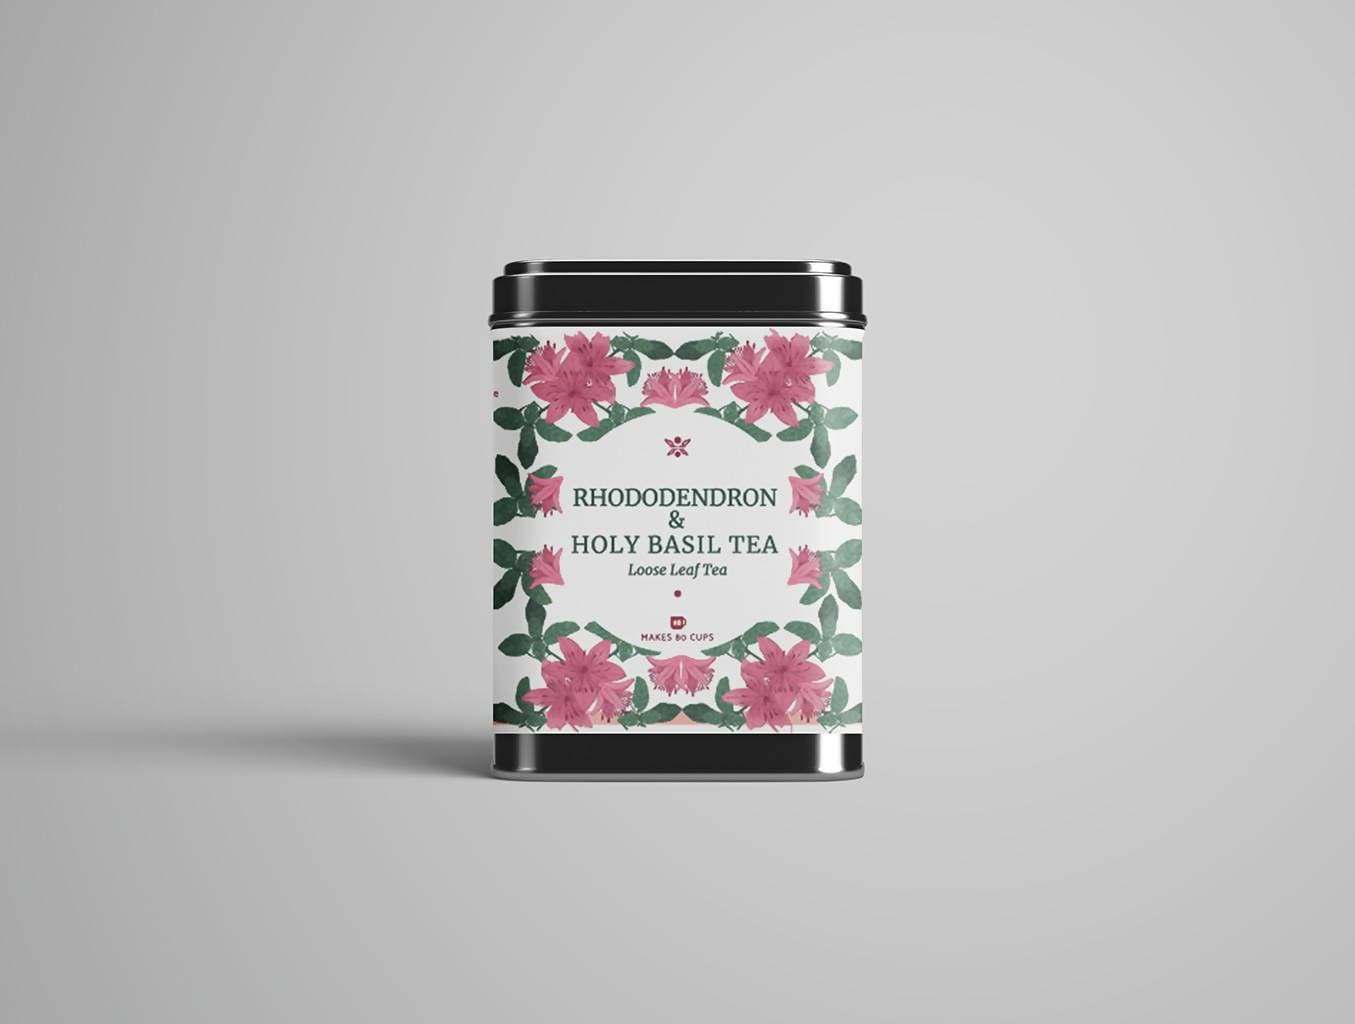 Rhododendron & Holy Basil Tea